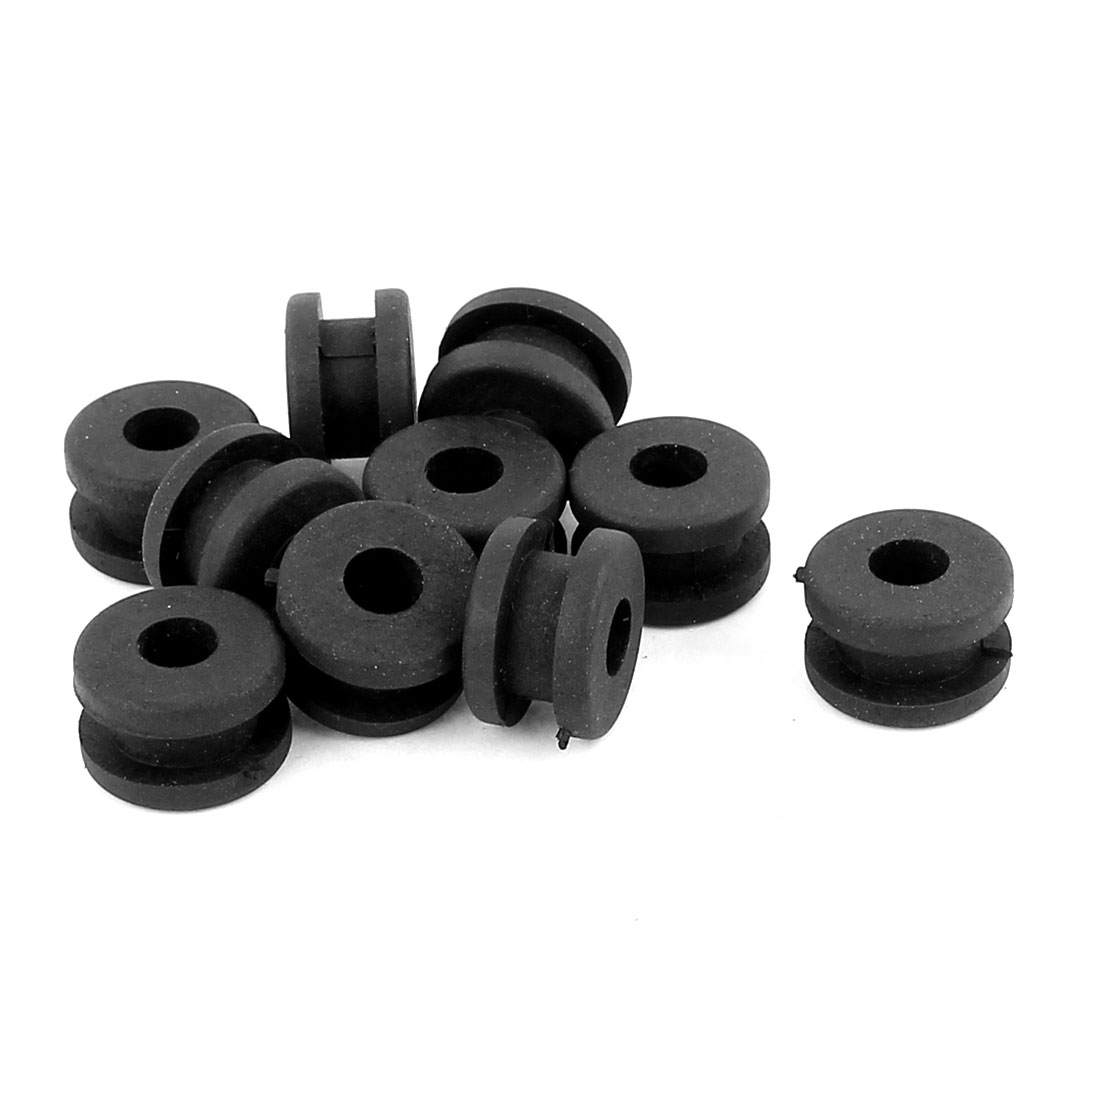 10 Pcs 8.8x5mm Gray Rubber Mini Strain Relief Cord Boot Protector Cable Sleeve Hose for Power Tool